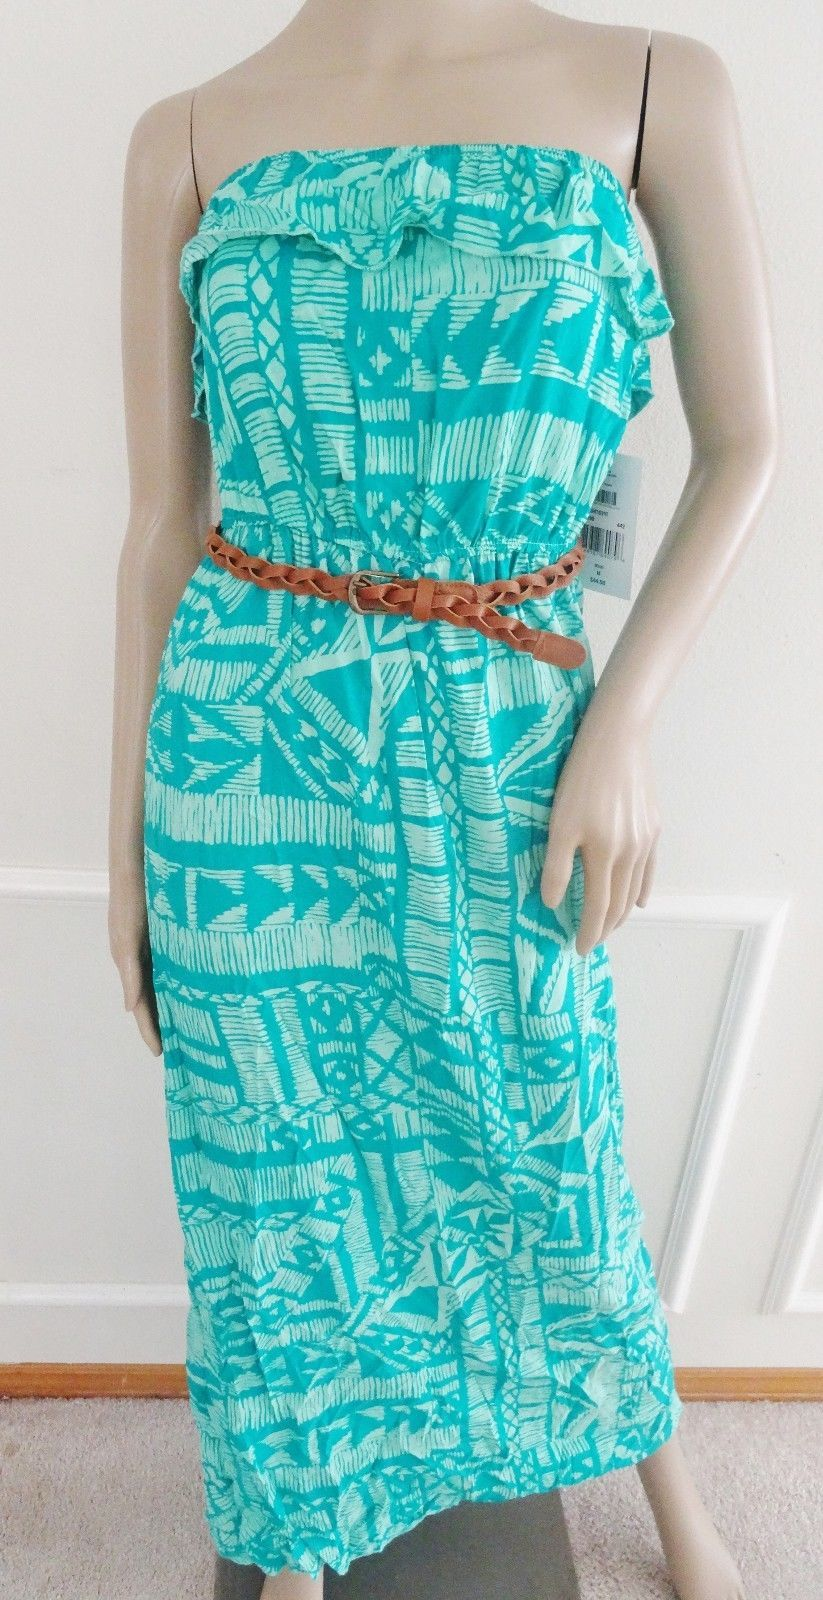 9bdb9864ab7 Nwt Trixxi Woven Strapless Maxi Dress Sz S and 50 similar items. S l1600